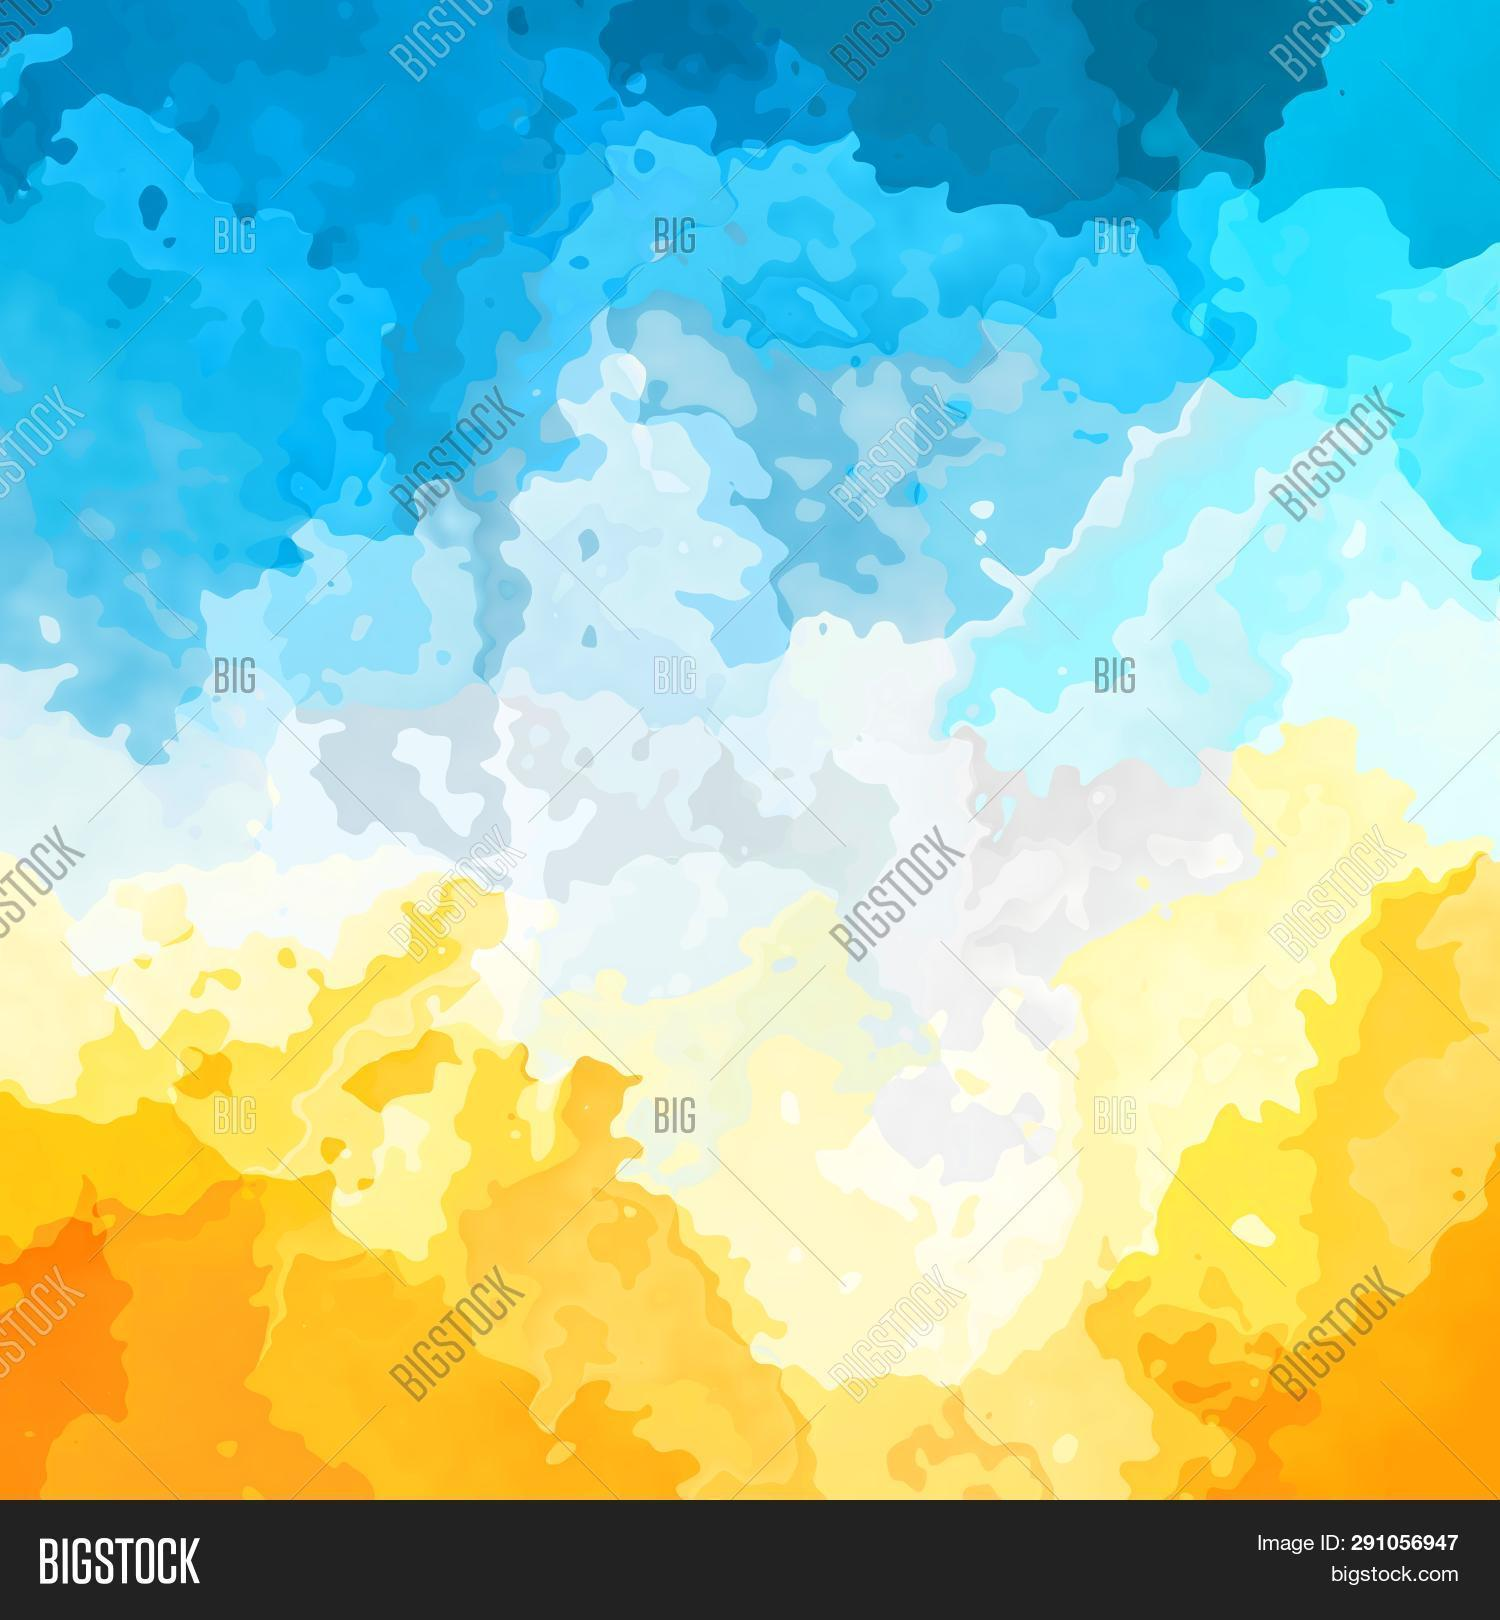 Abstract Stained Image Photo Free Trial Bigstock